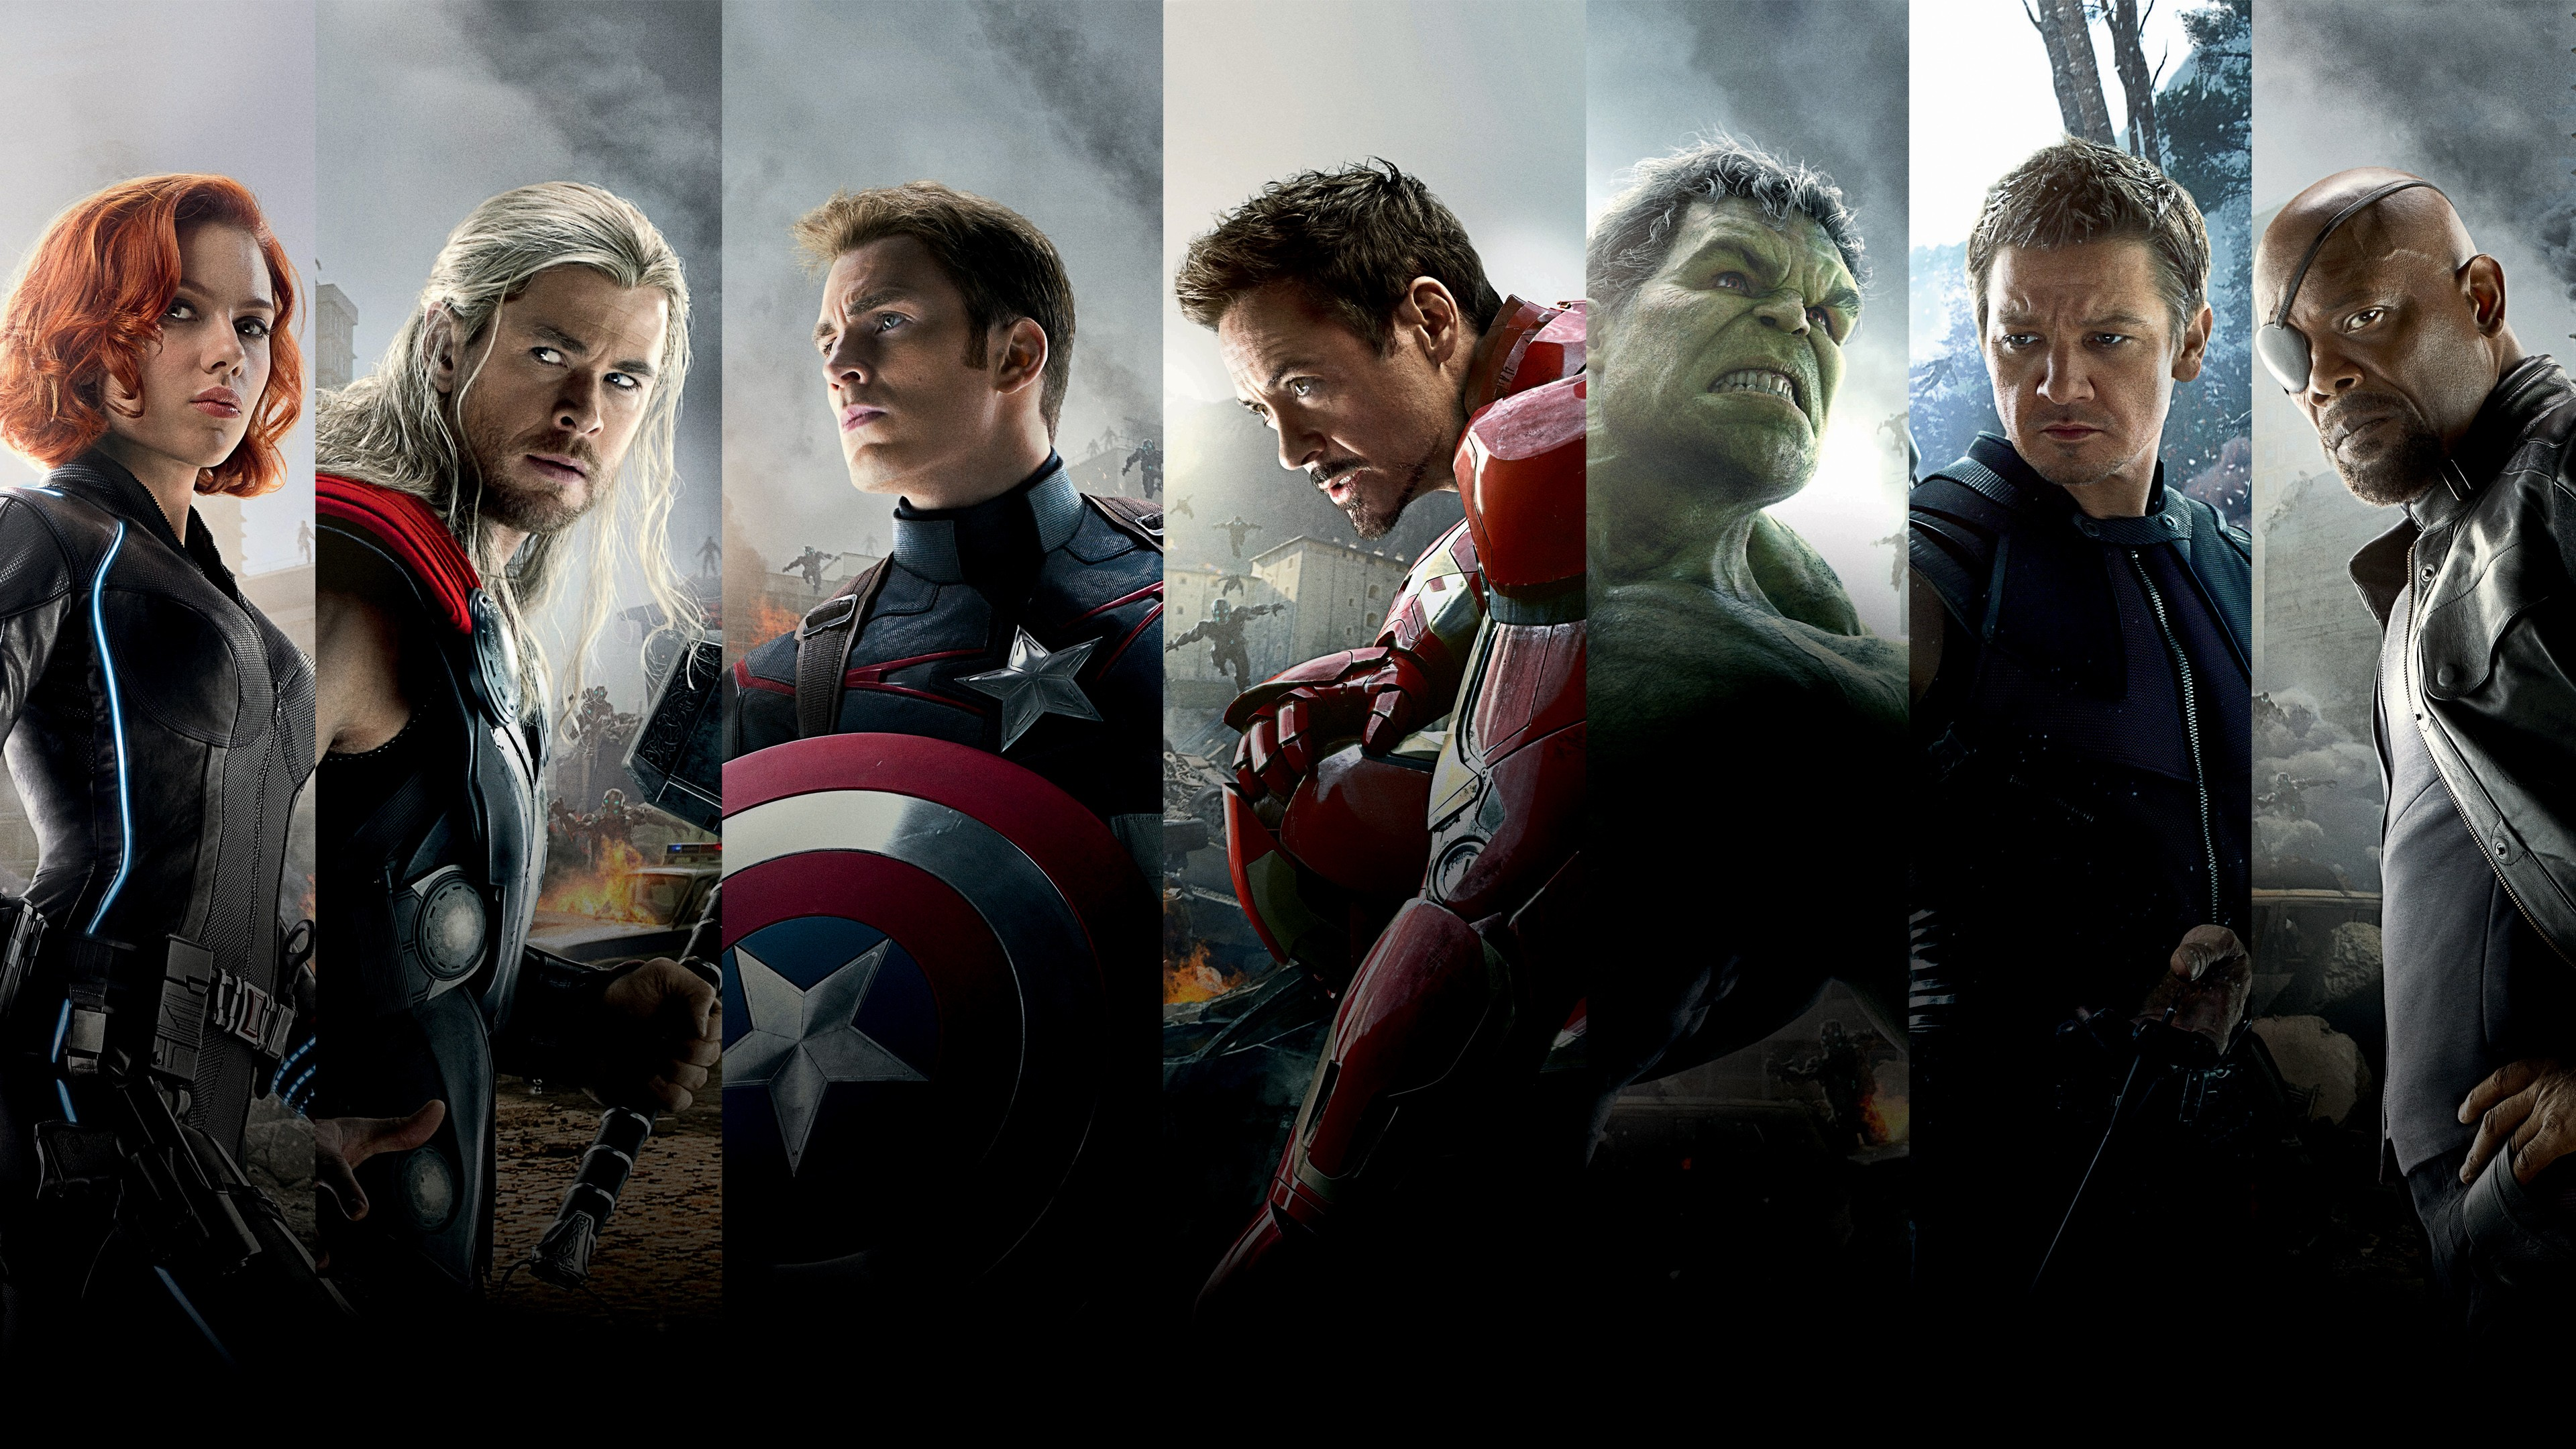 Avengers Age Of Ultron 2 Hd Movies 4k Wallpapers Images